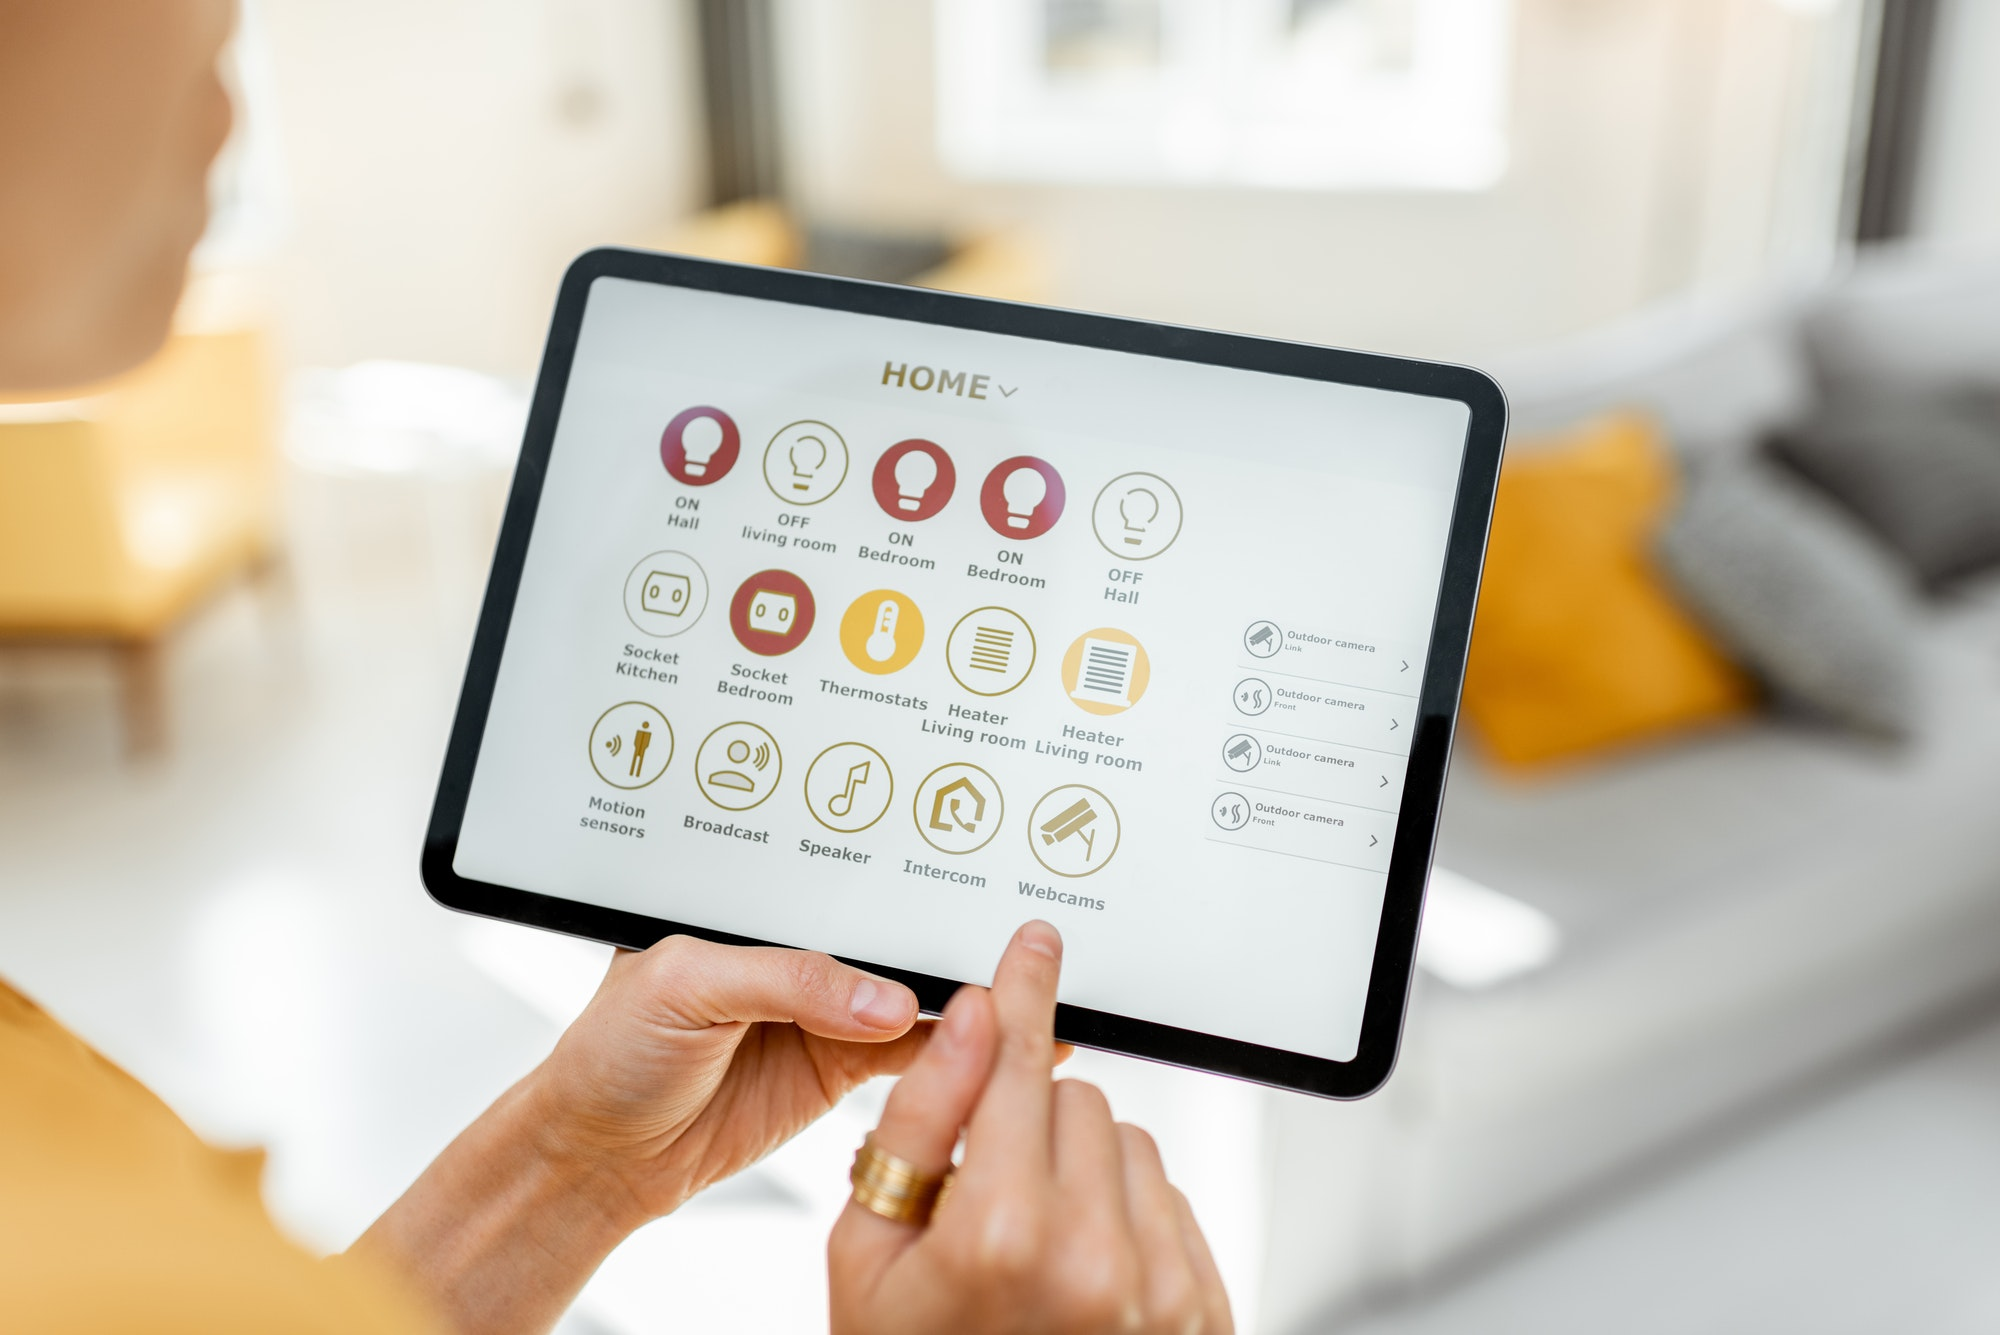 Controlling smart home devices using a digital tablet